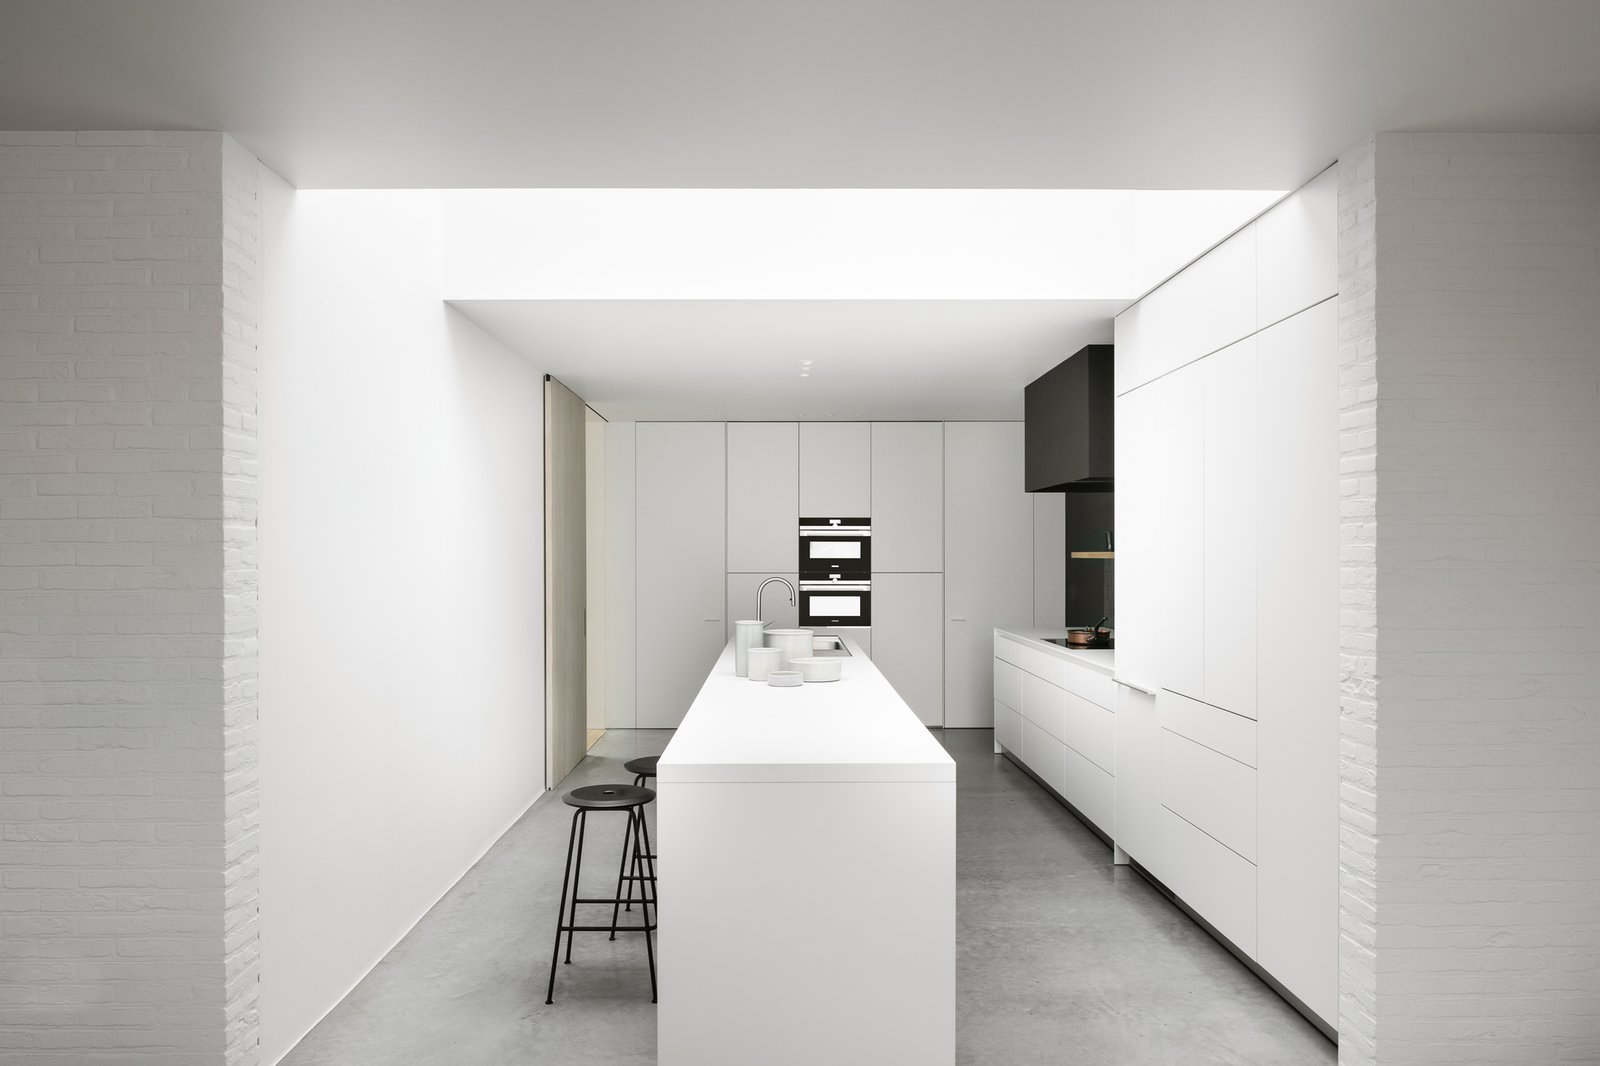 White Cabinet, Range Hood, Wall Oven, Windows, and Skylight Window Type  Photos from Kitchen and More by Vincent Holvoet